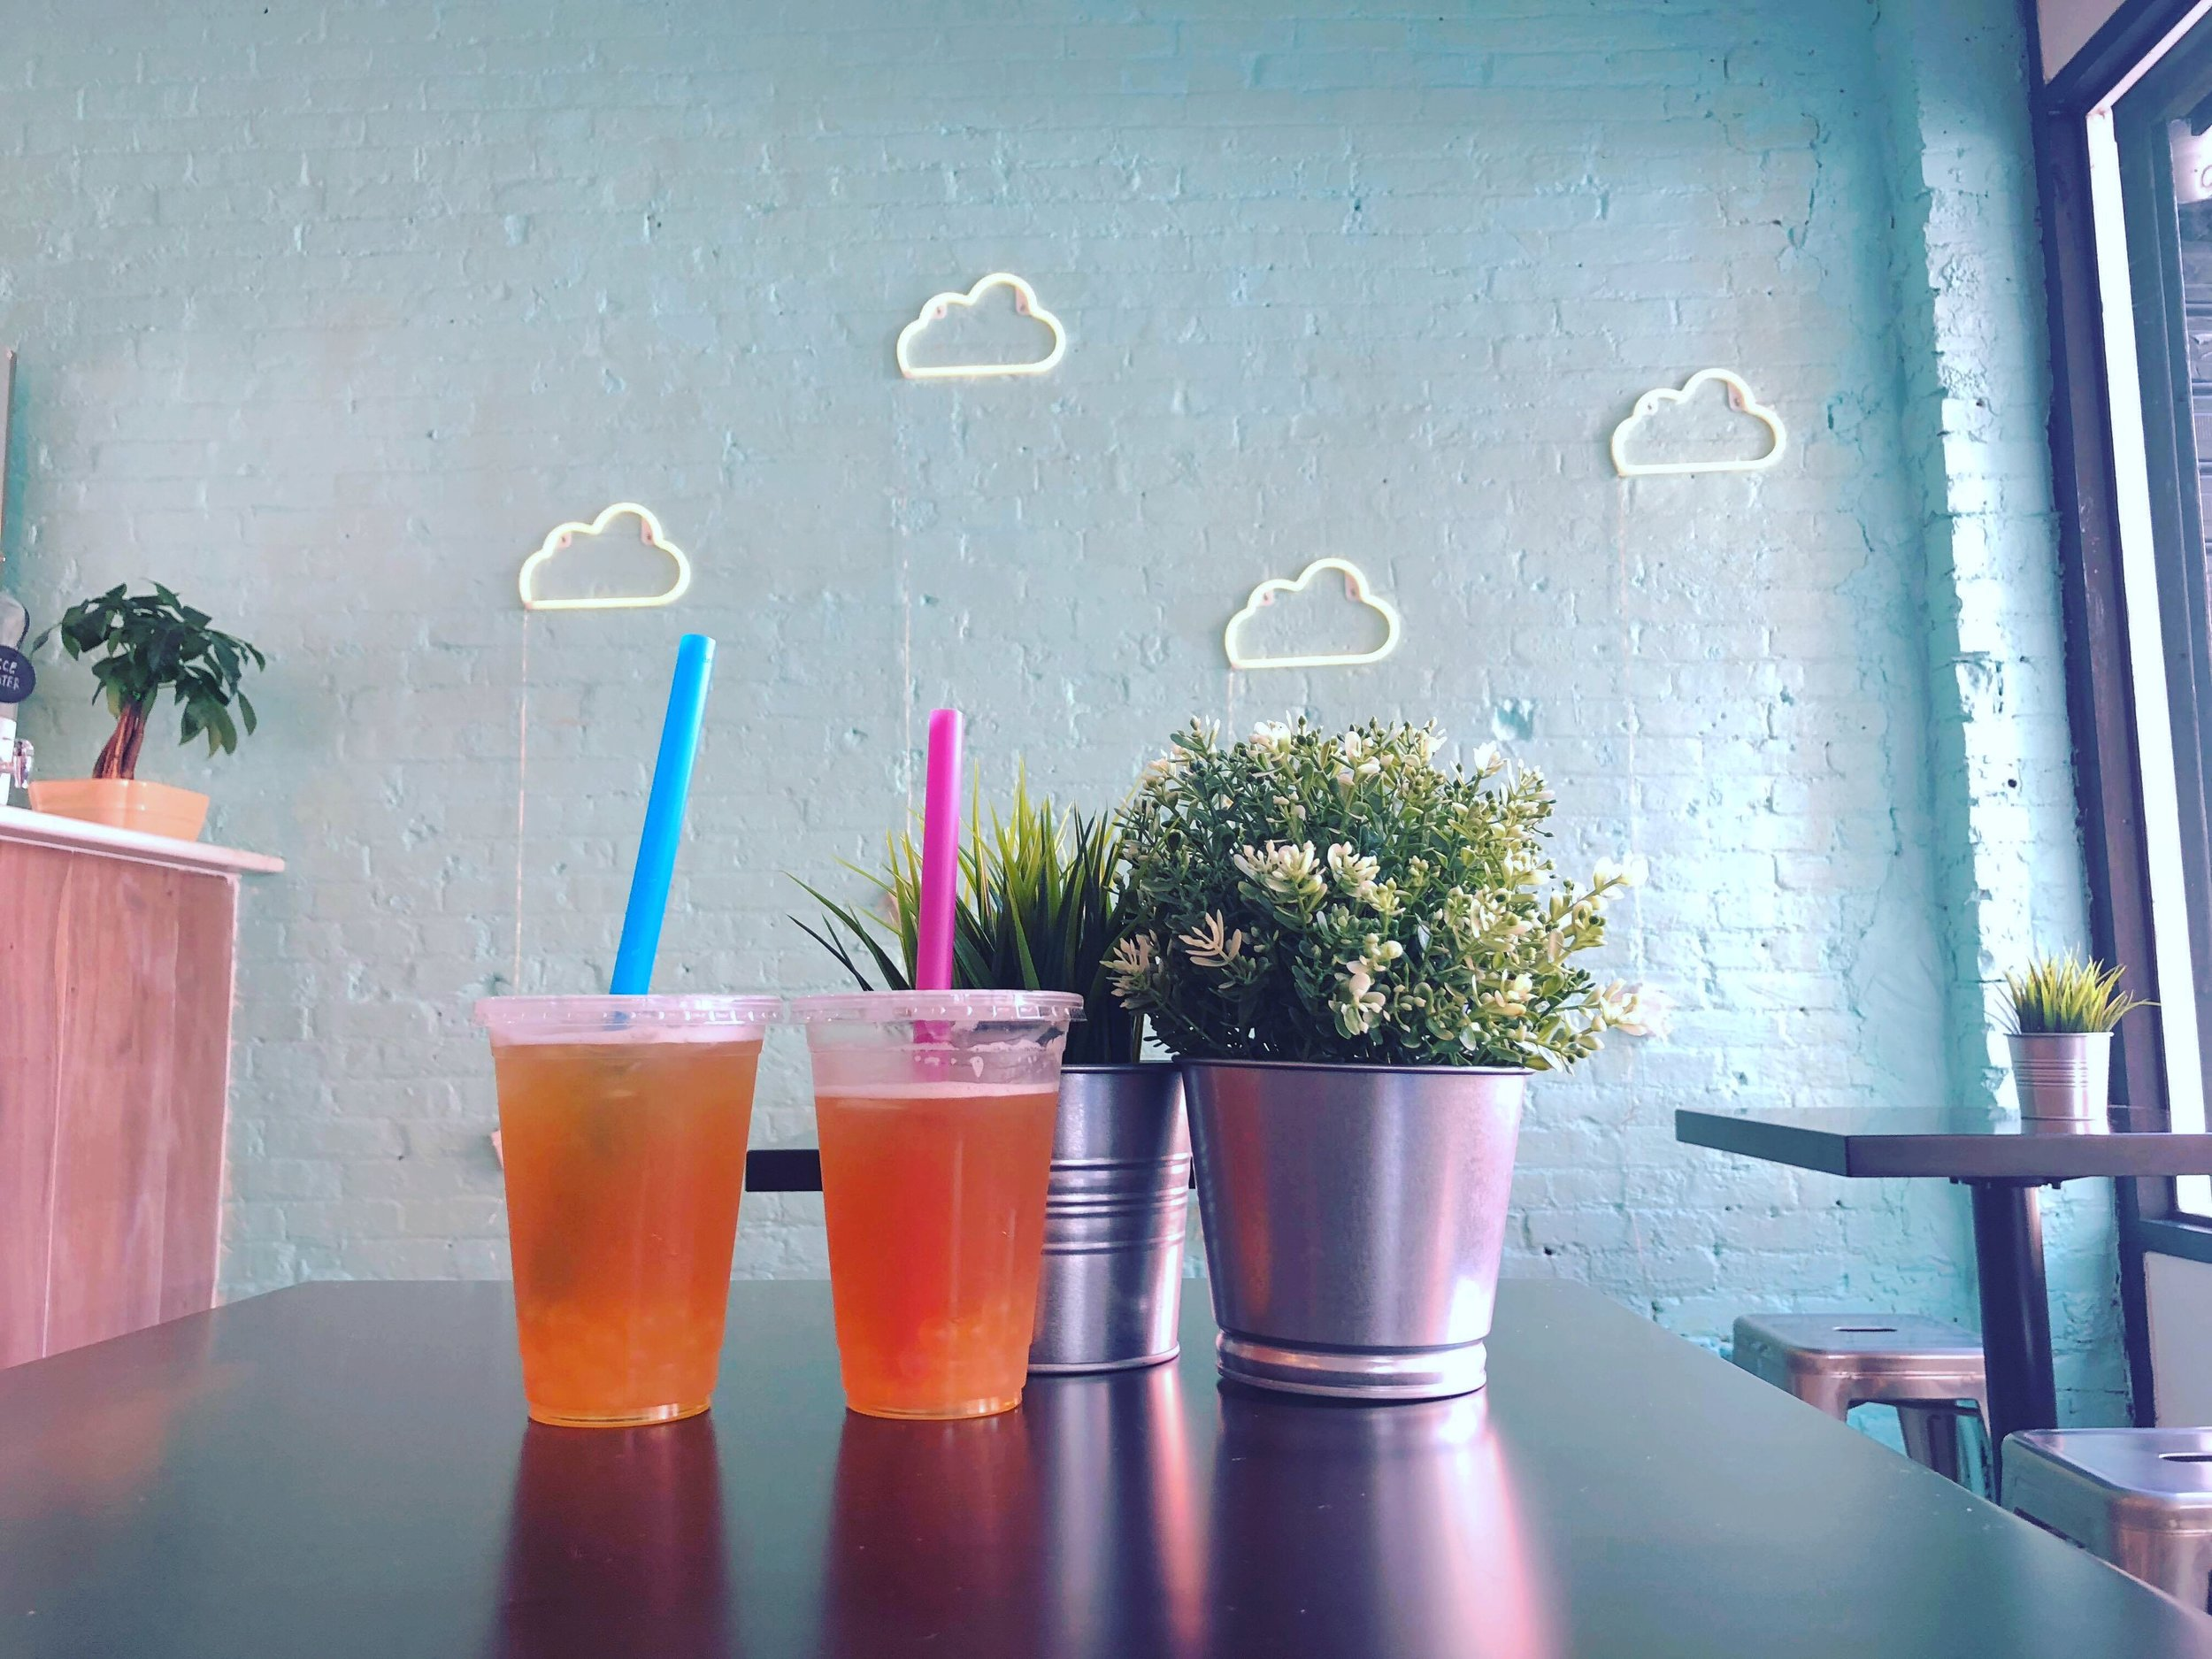 clouds and drinks.jpg